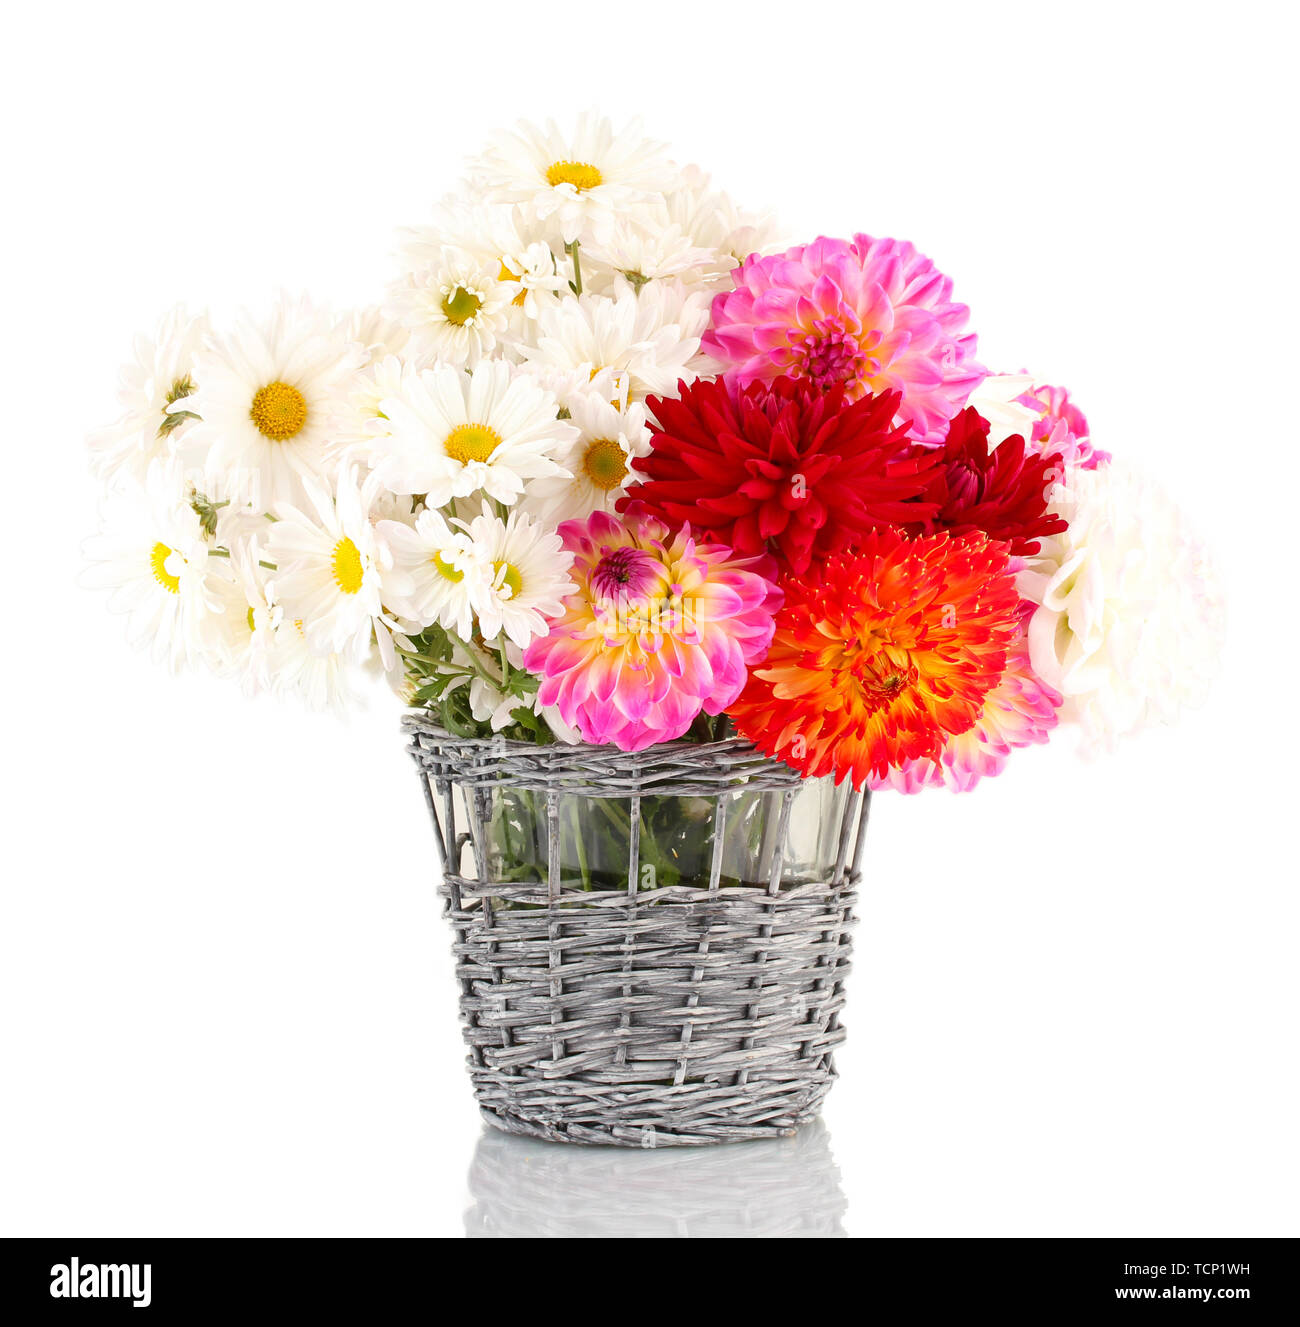 daisies and dahilas in vase isolated on white - Stock Image